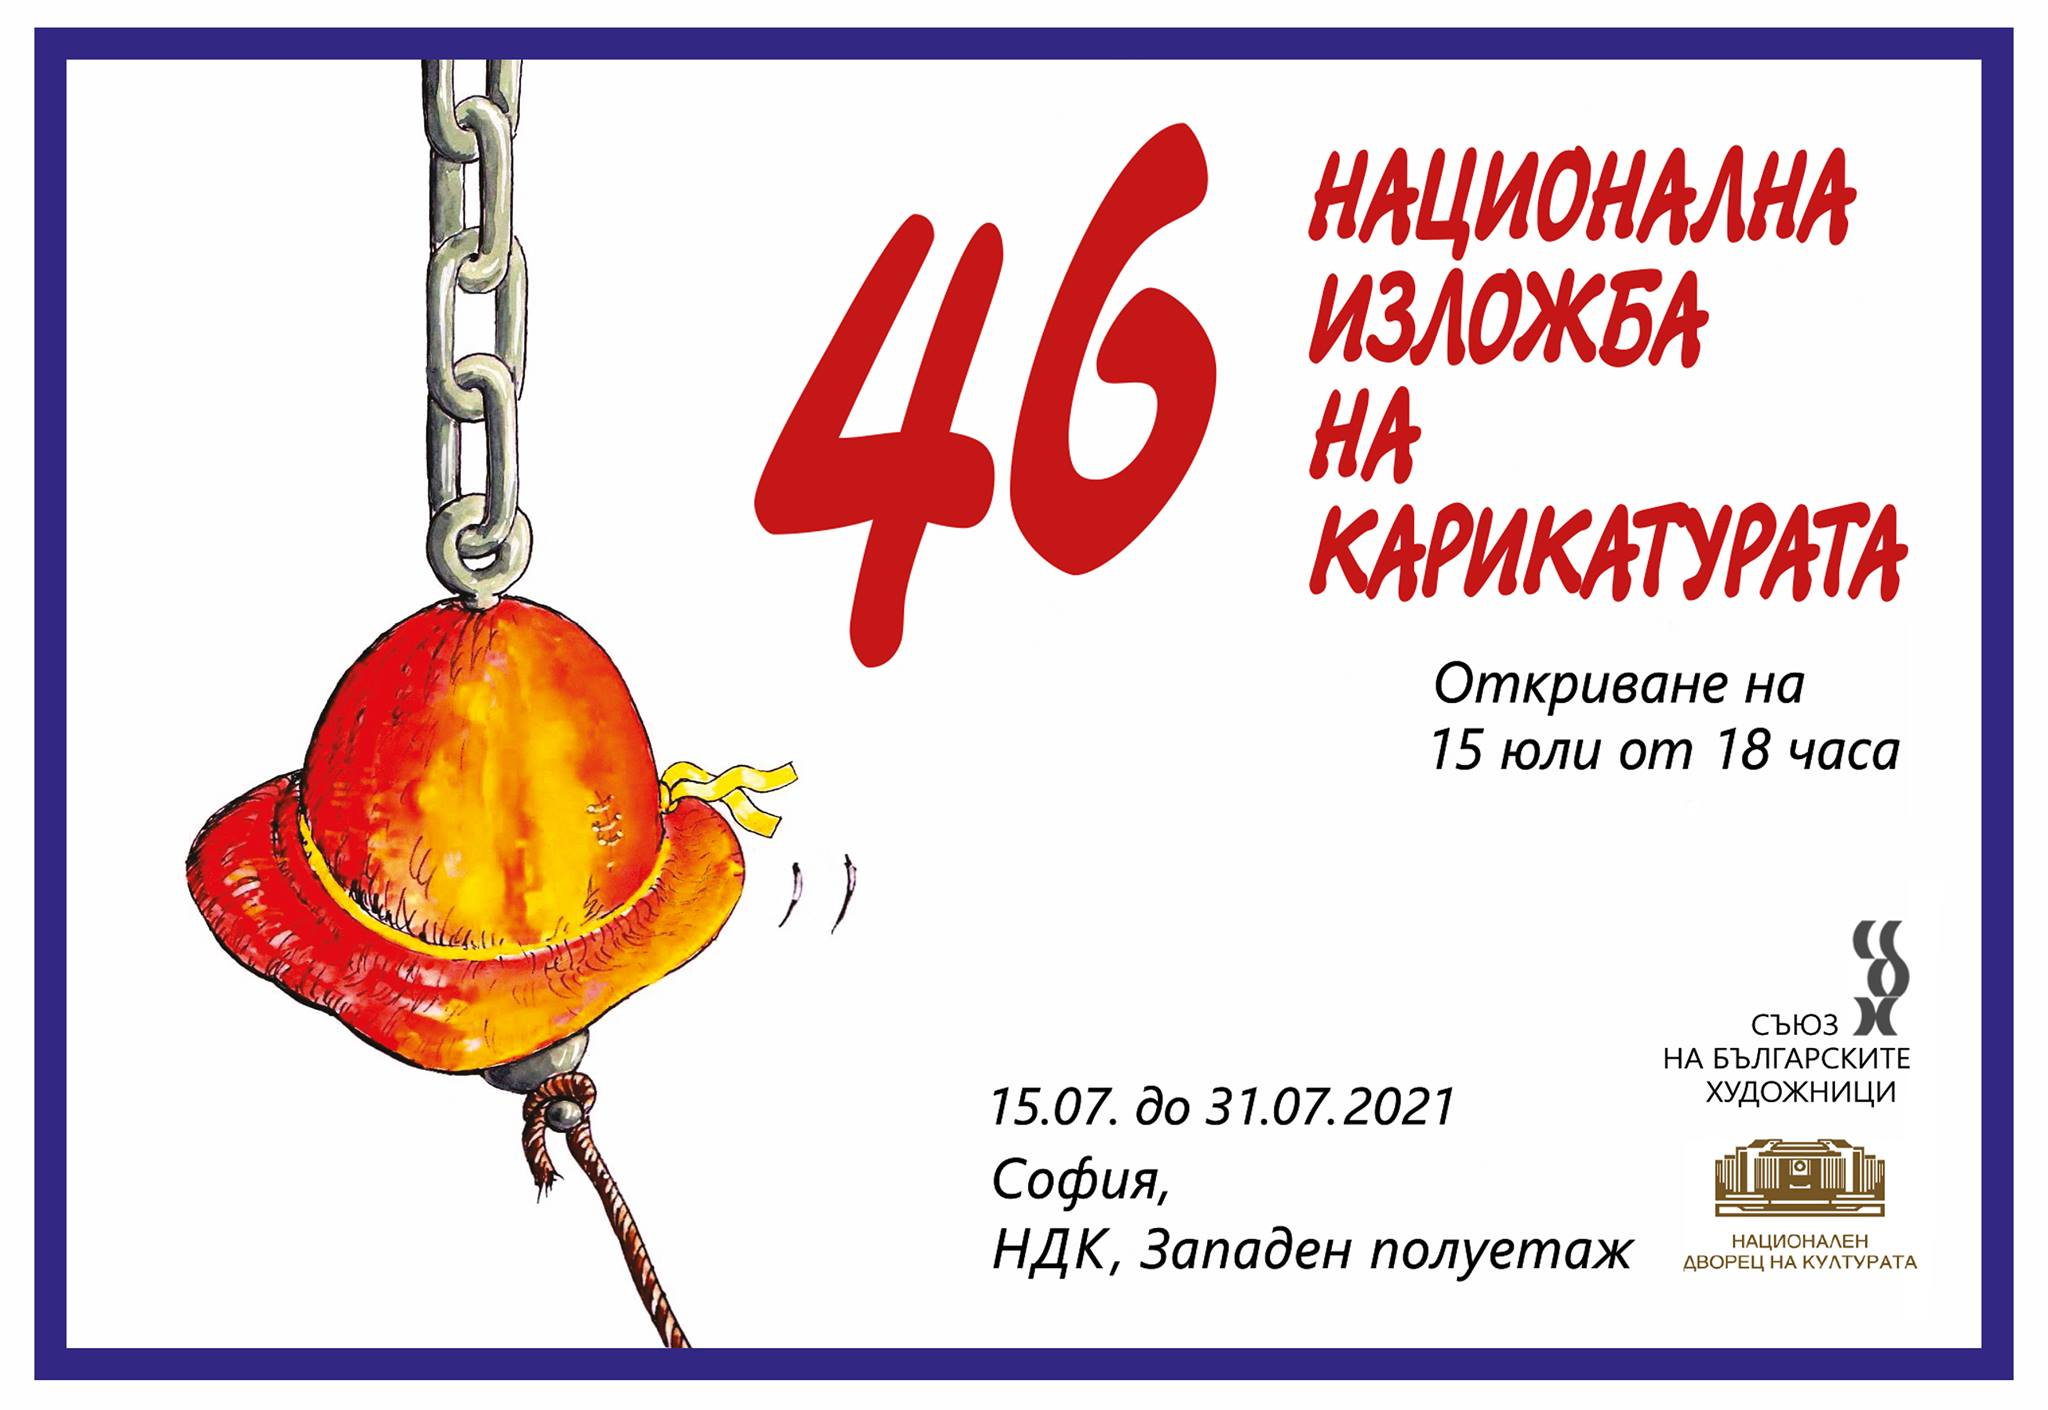 National Caricature Exhibition in Sofia